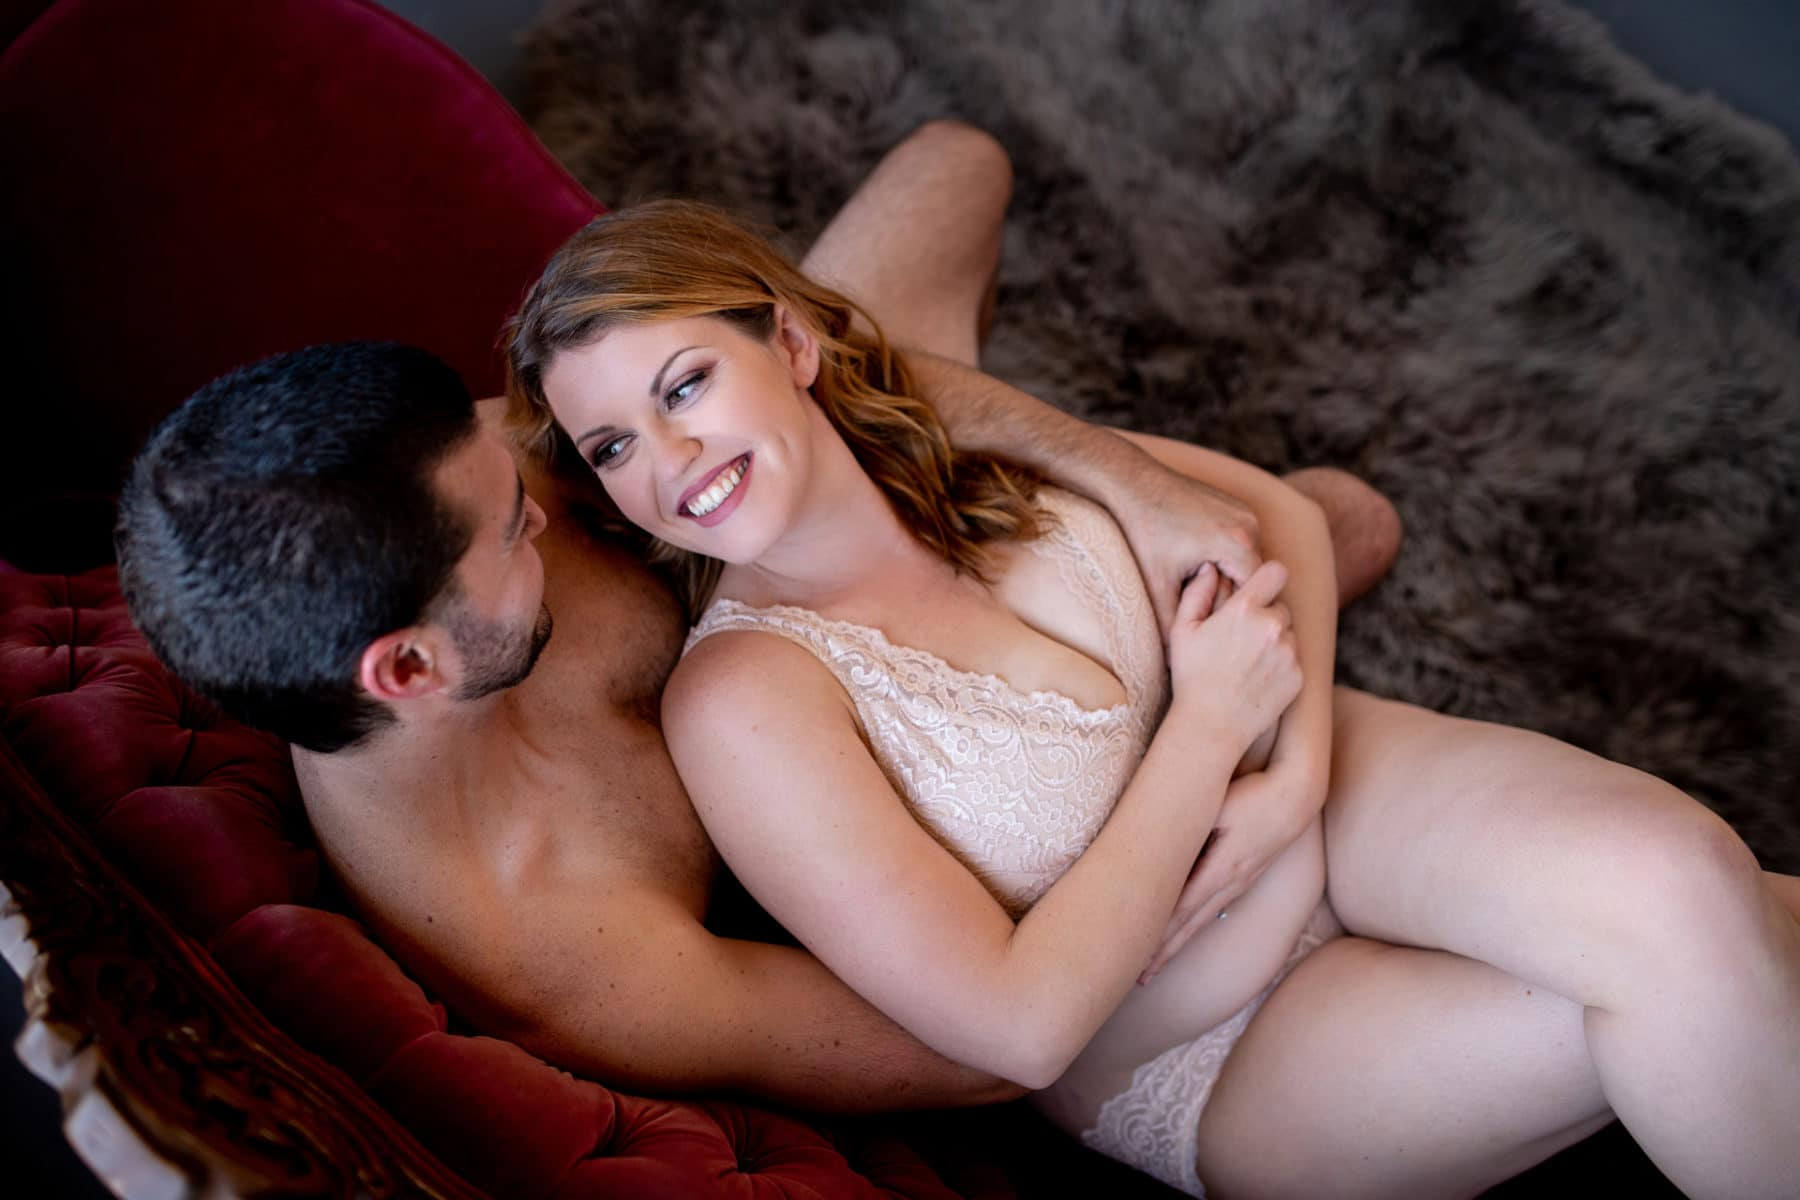 Cute Couples Boudoir Photography Poses